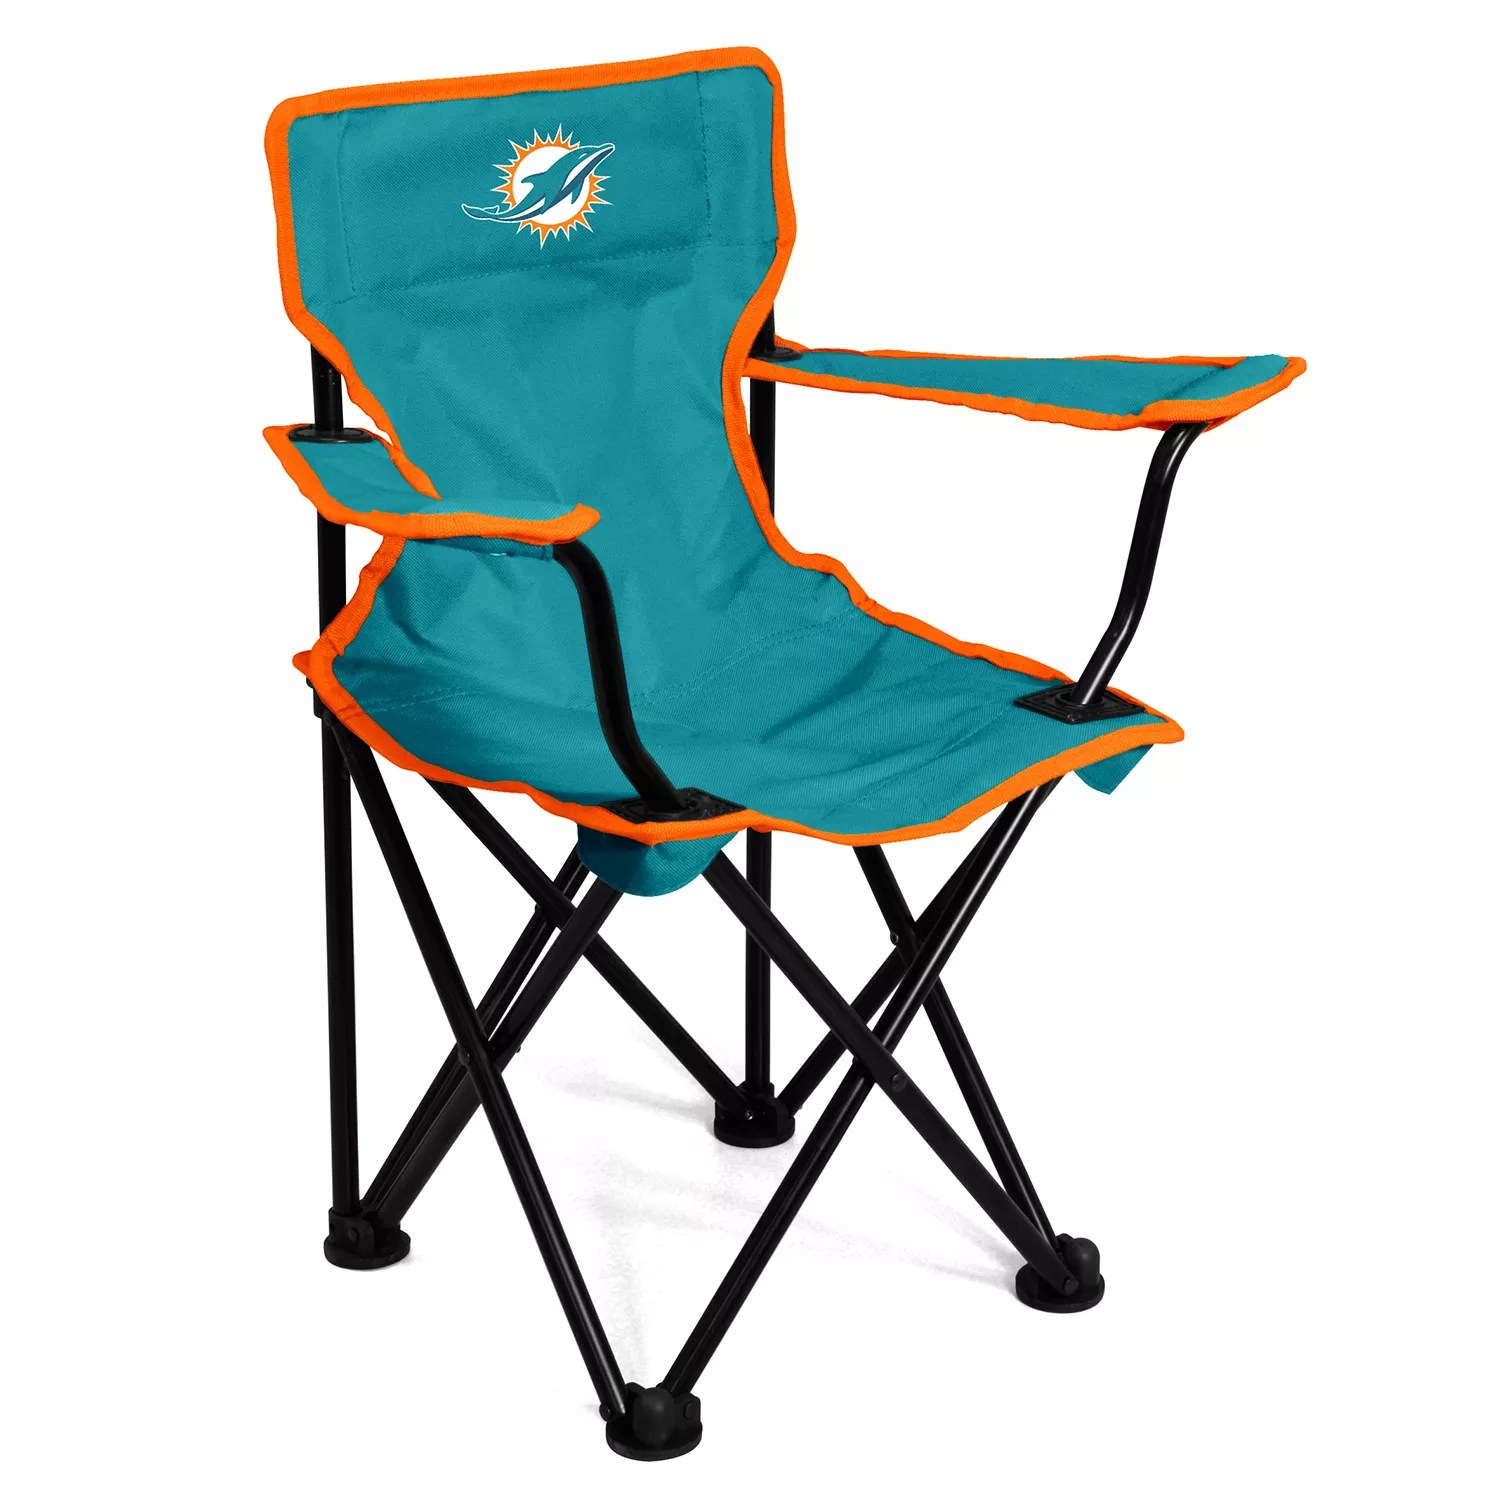 Kohls Folding Chairs Logo Brands Miami Dolphins Toddler Portable Folding Chair